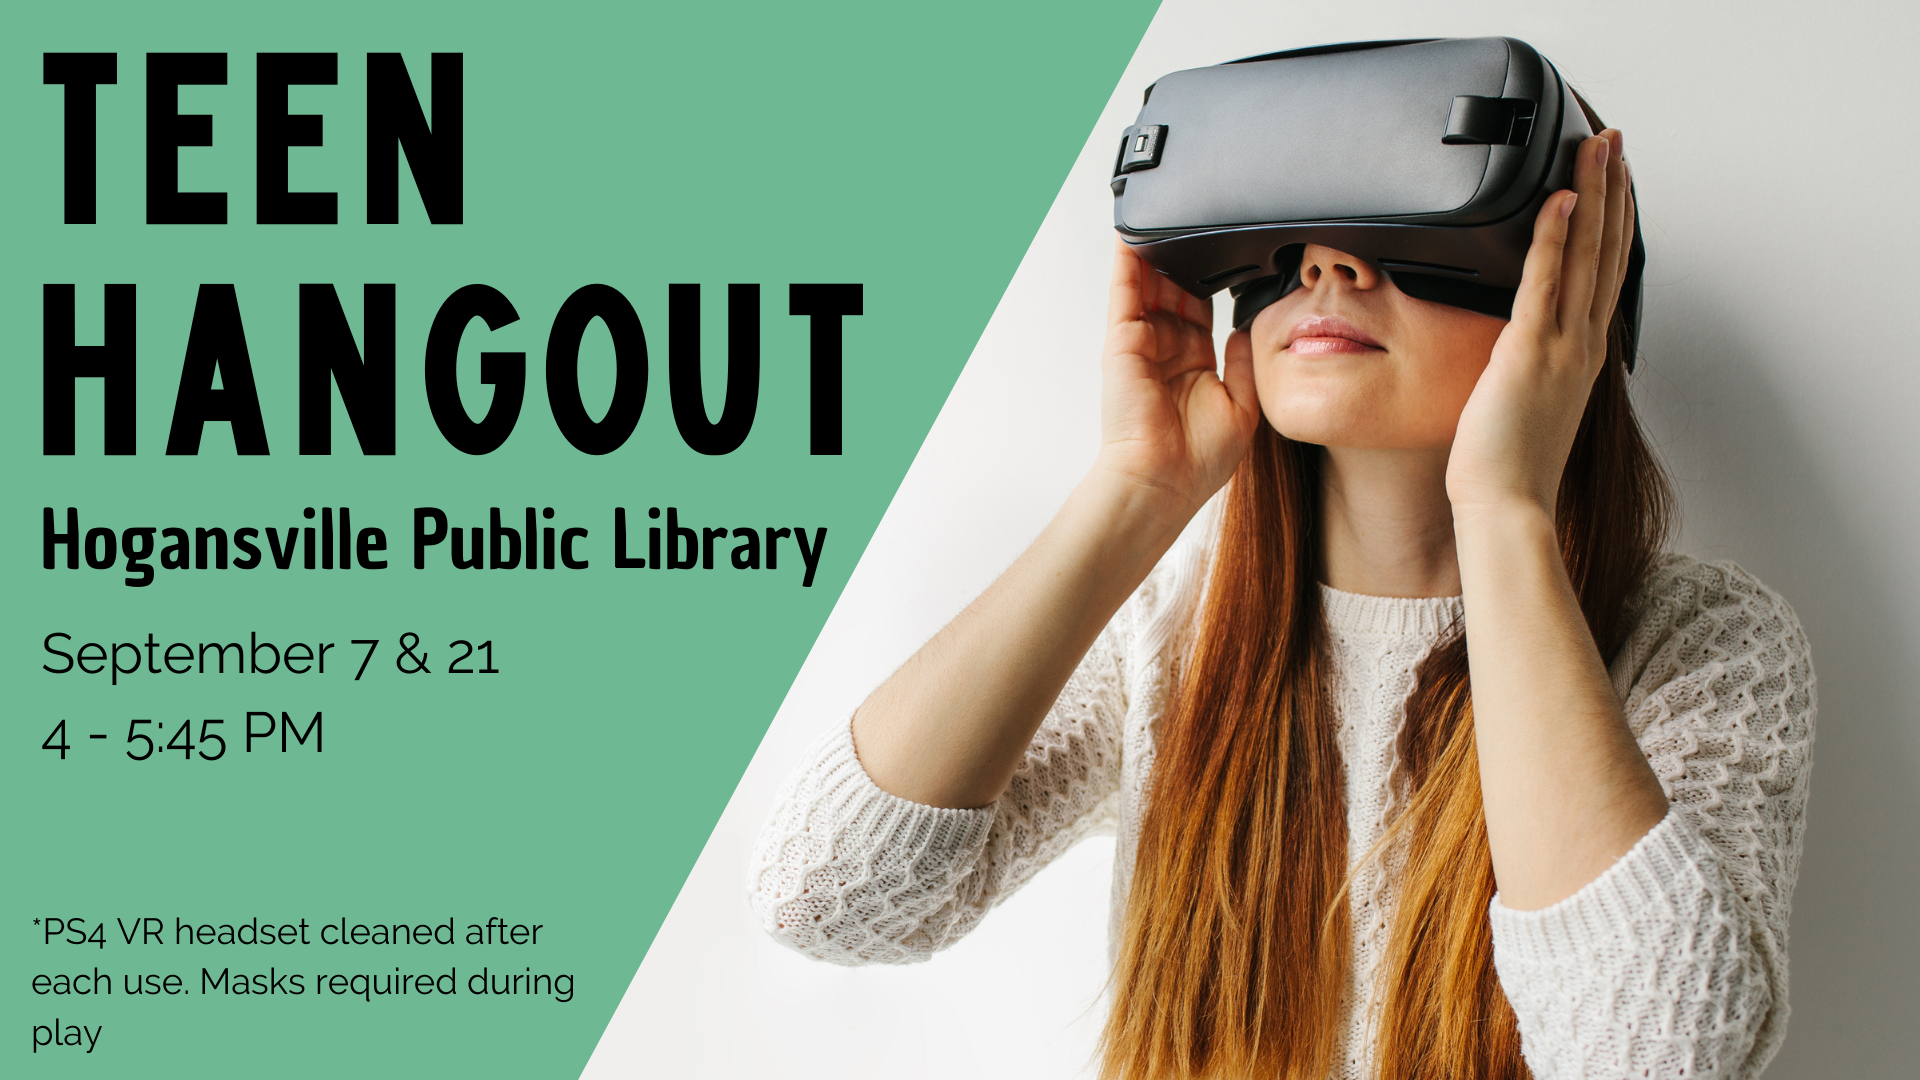 Middle & high school students: come hang out with us! We're meeting up at the Hogansville Library from 4-5:45 PM on September 21. Activities will include video games on the PS4 VR and Nintendo Switch consoles, board games, art supplies, and light refreshments. The PS4 VR headset will be sanitized between uses, and masks are required during play. No library card/registration required.